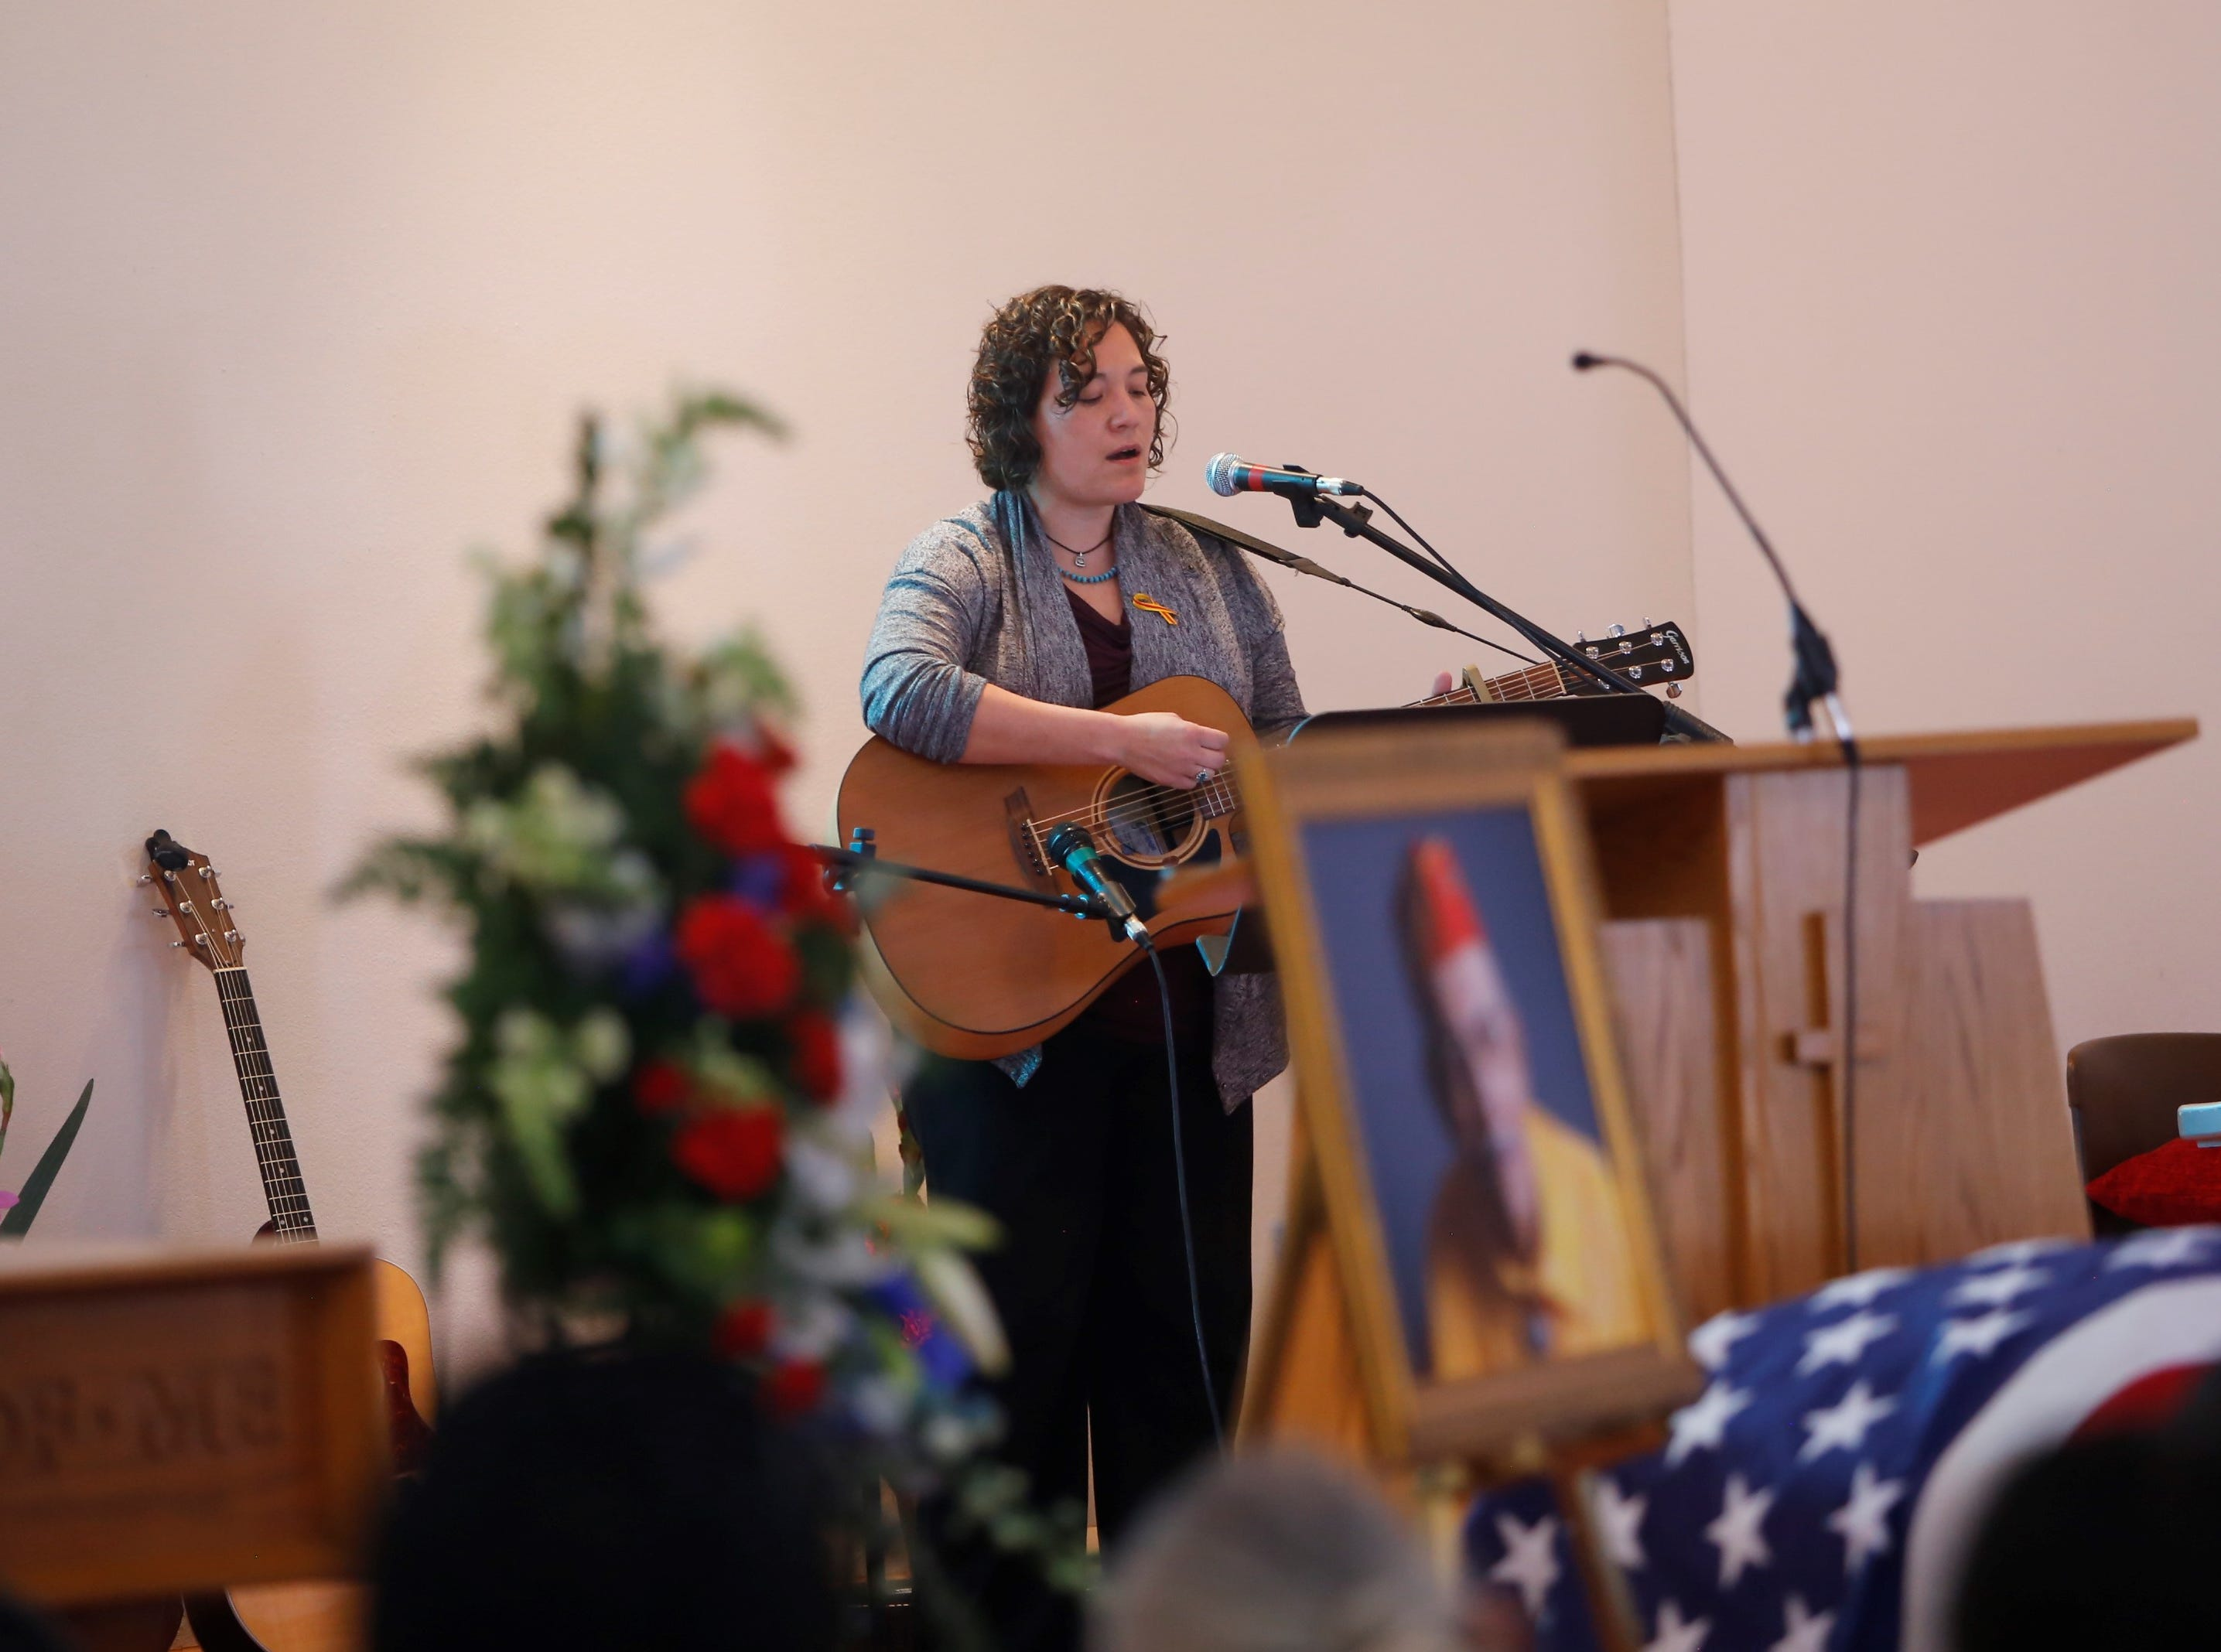 Celine Newman sings at her grandfather's funeral service at the Maranatha Fellowship Christian Reformed Church on Saturday in Farmington.